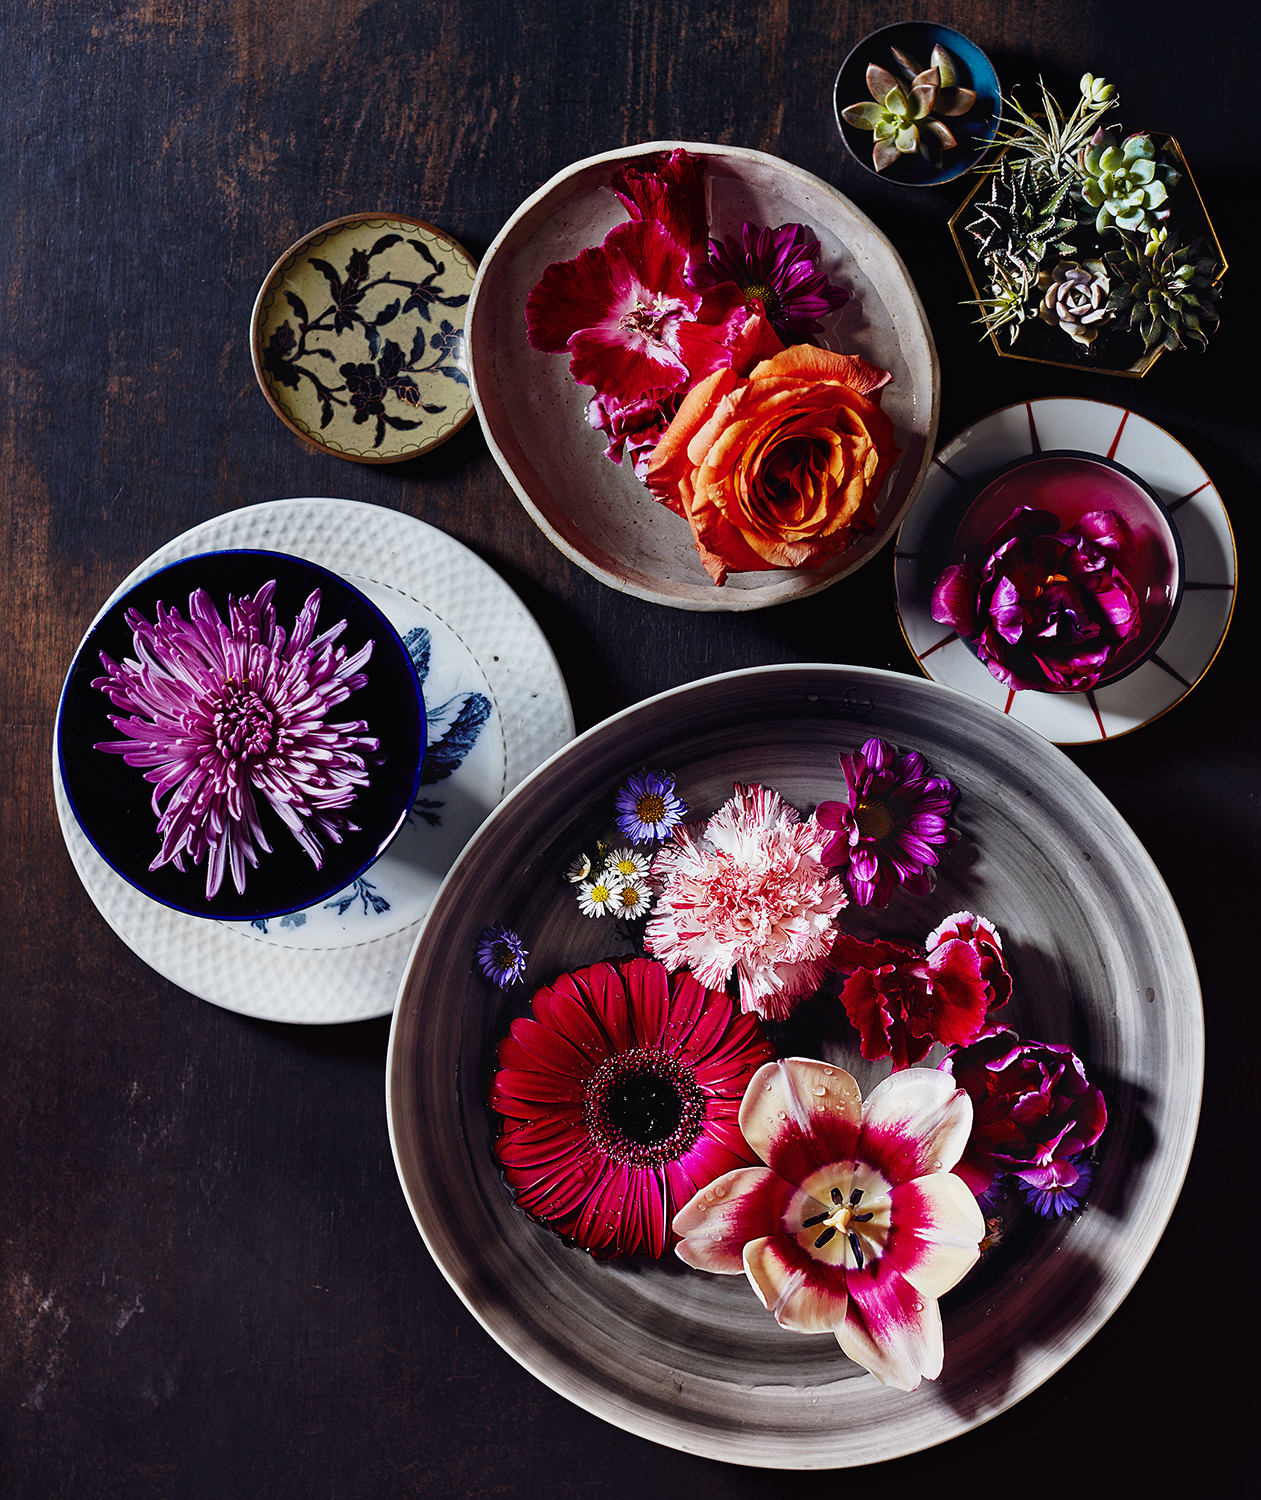 Flowers floating in bowls